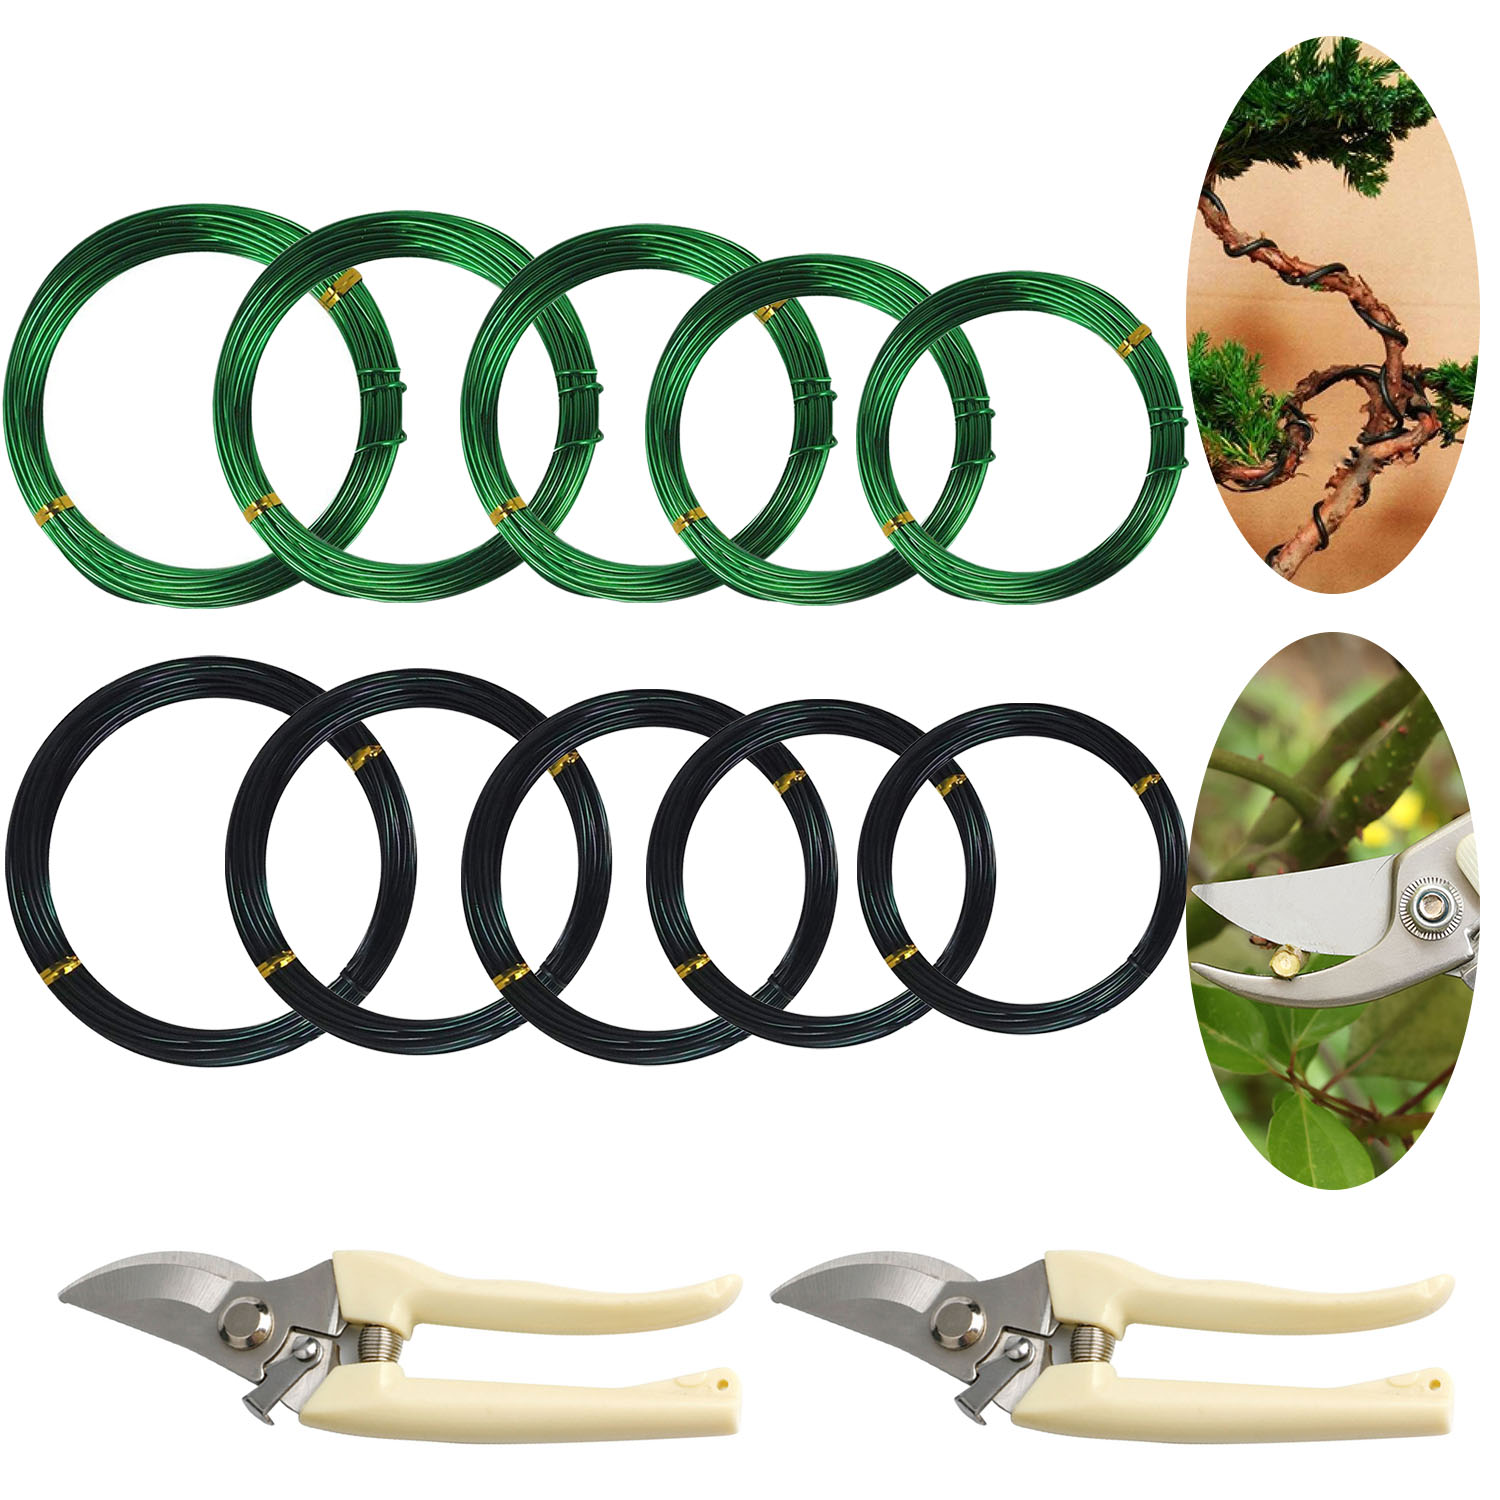 5 Roll 5m Aluminum Tree Training Wires with Garden Scissors for Bonsai Plant Beginners Trainers Artists 1mm/1.5mm/2mm/2.5mm/3mm5 Roll 5m Aluminum Tree Training Wires with Garden Scissors for Bonsai Plant Beginners Trainers Artists 1mm/1.5mm/2mm/2.5mm/3mm